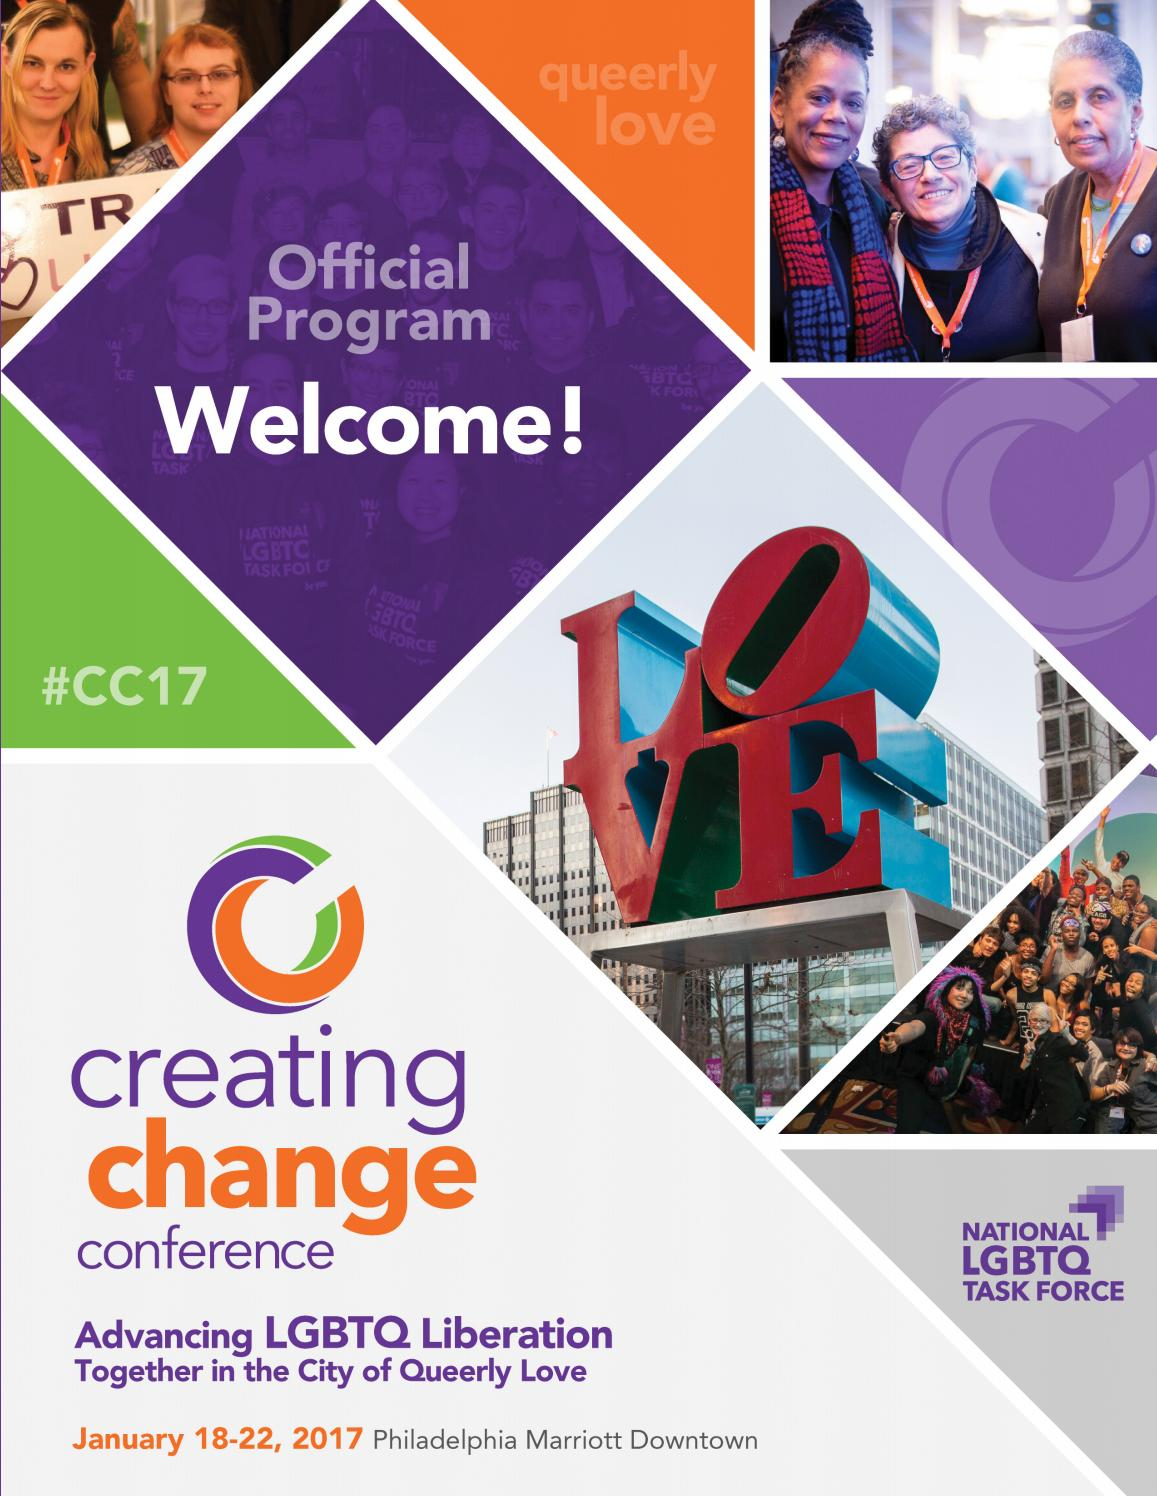 Creating Change 2017 Program By National Lgbtq Task Force Issuu Frame Ucc Competitor 20